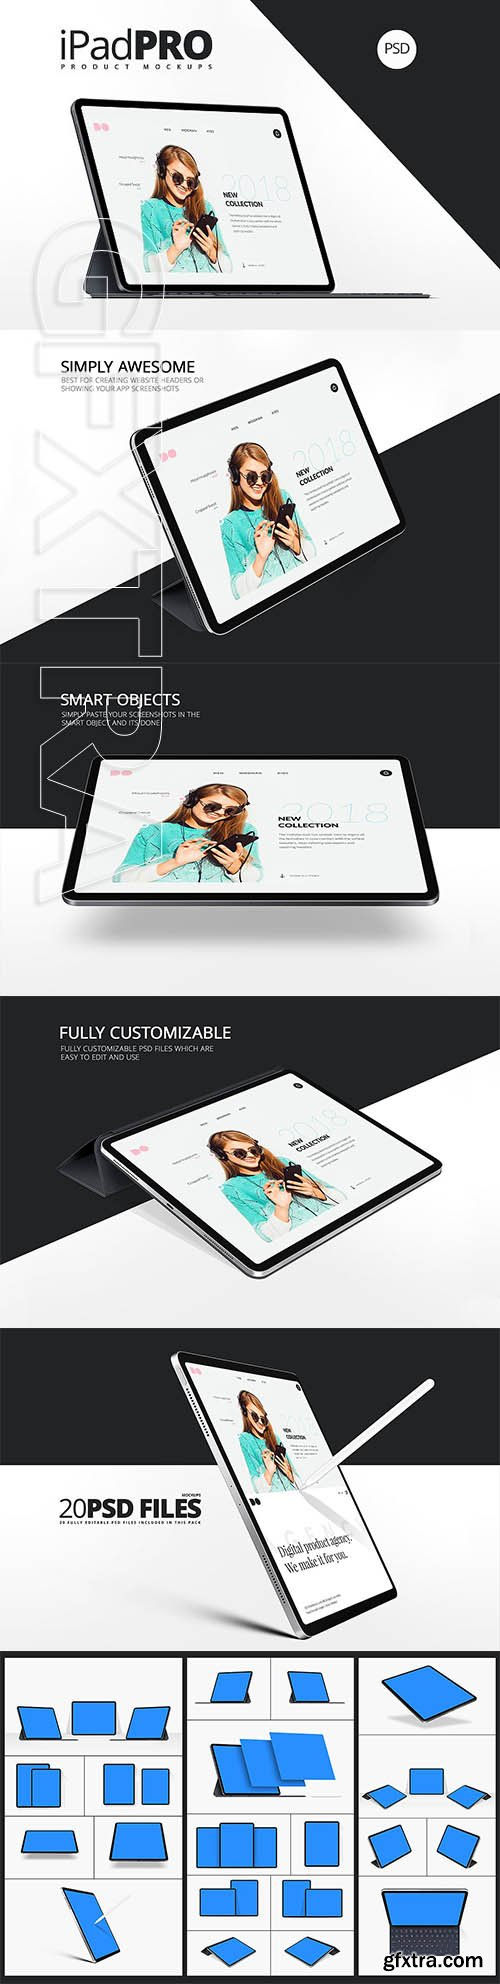 CreativeMarket - All New iPad Pro Mockups 3327847